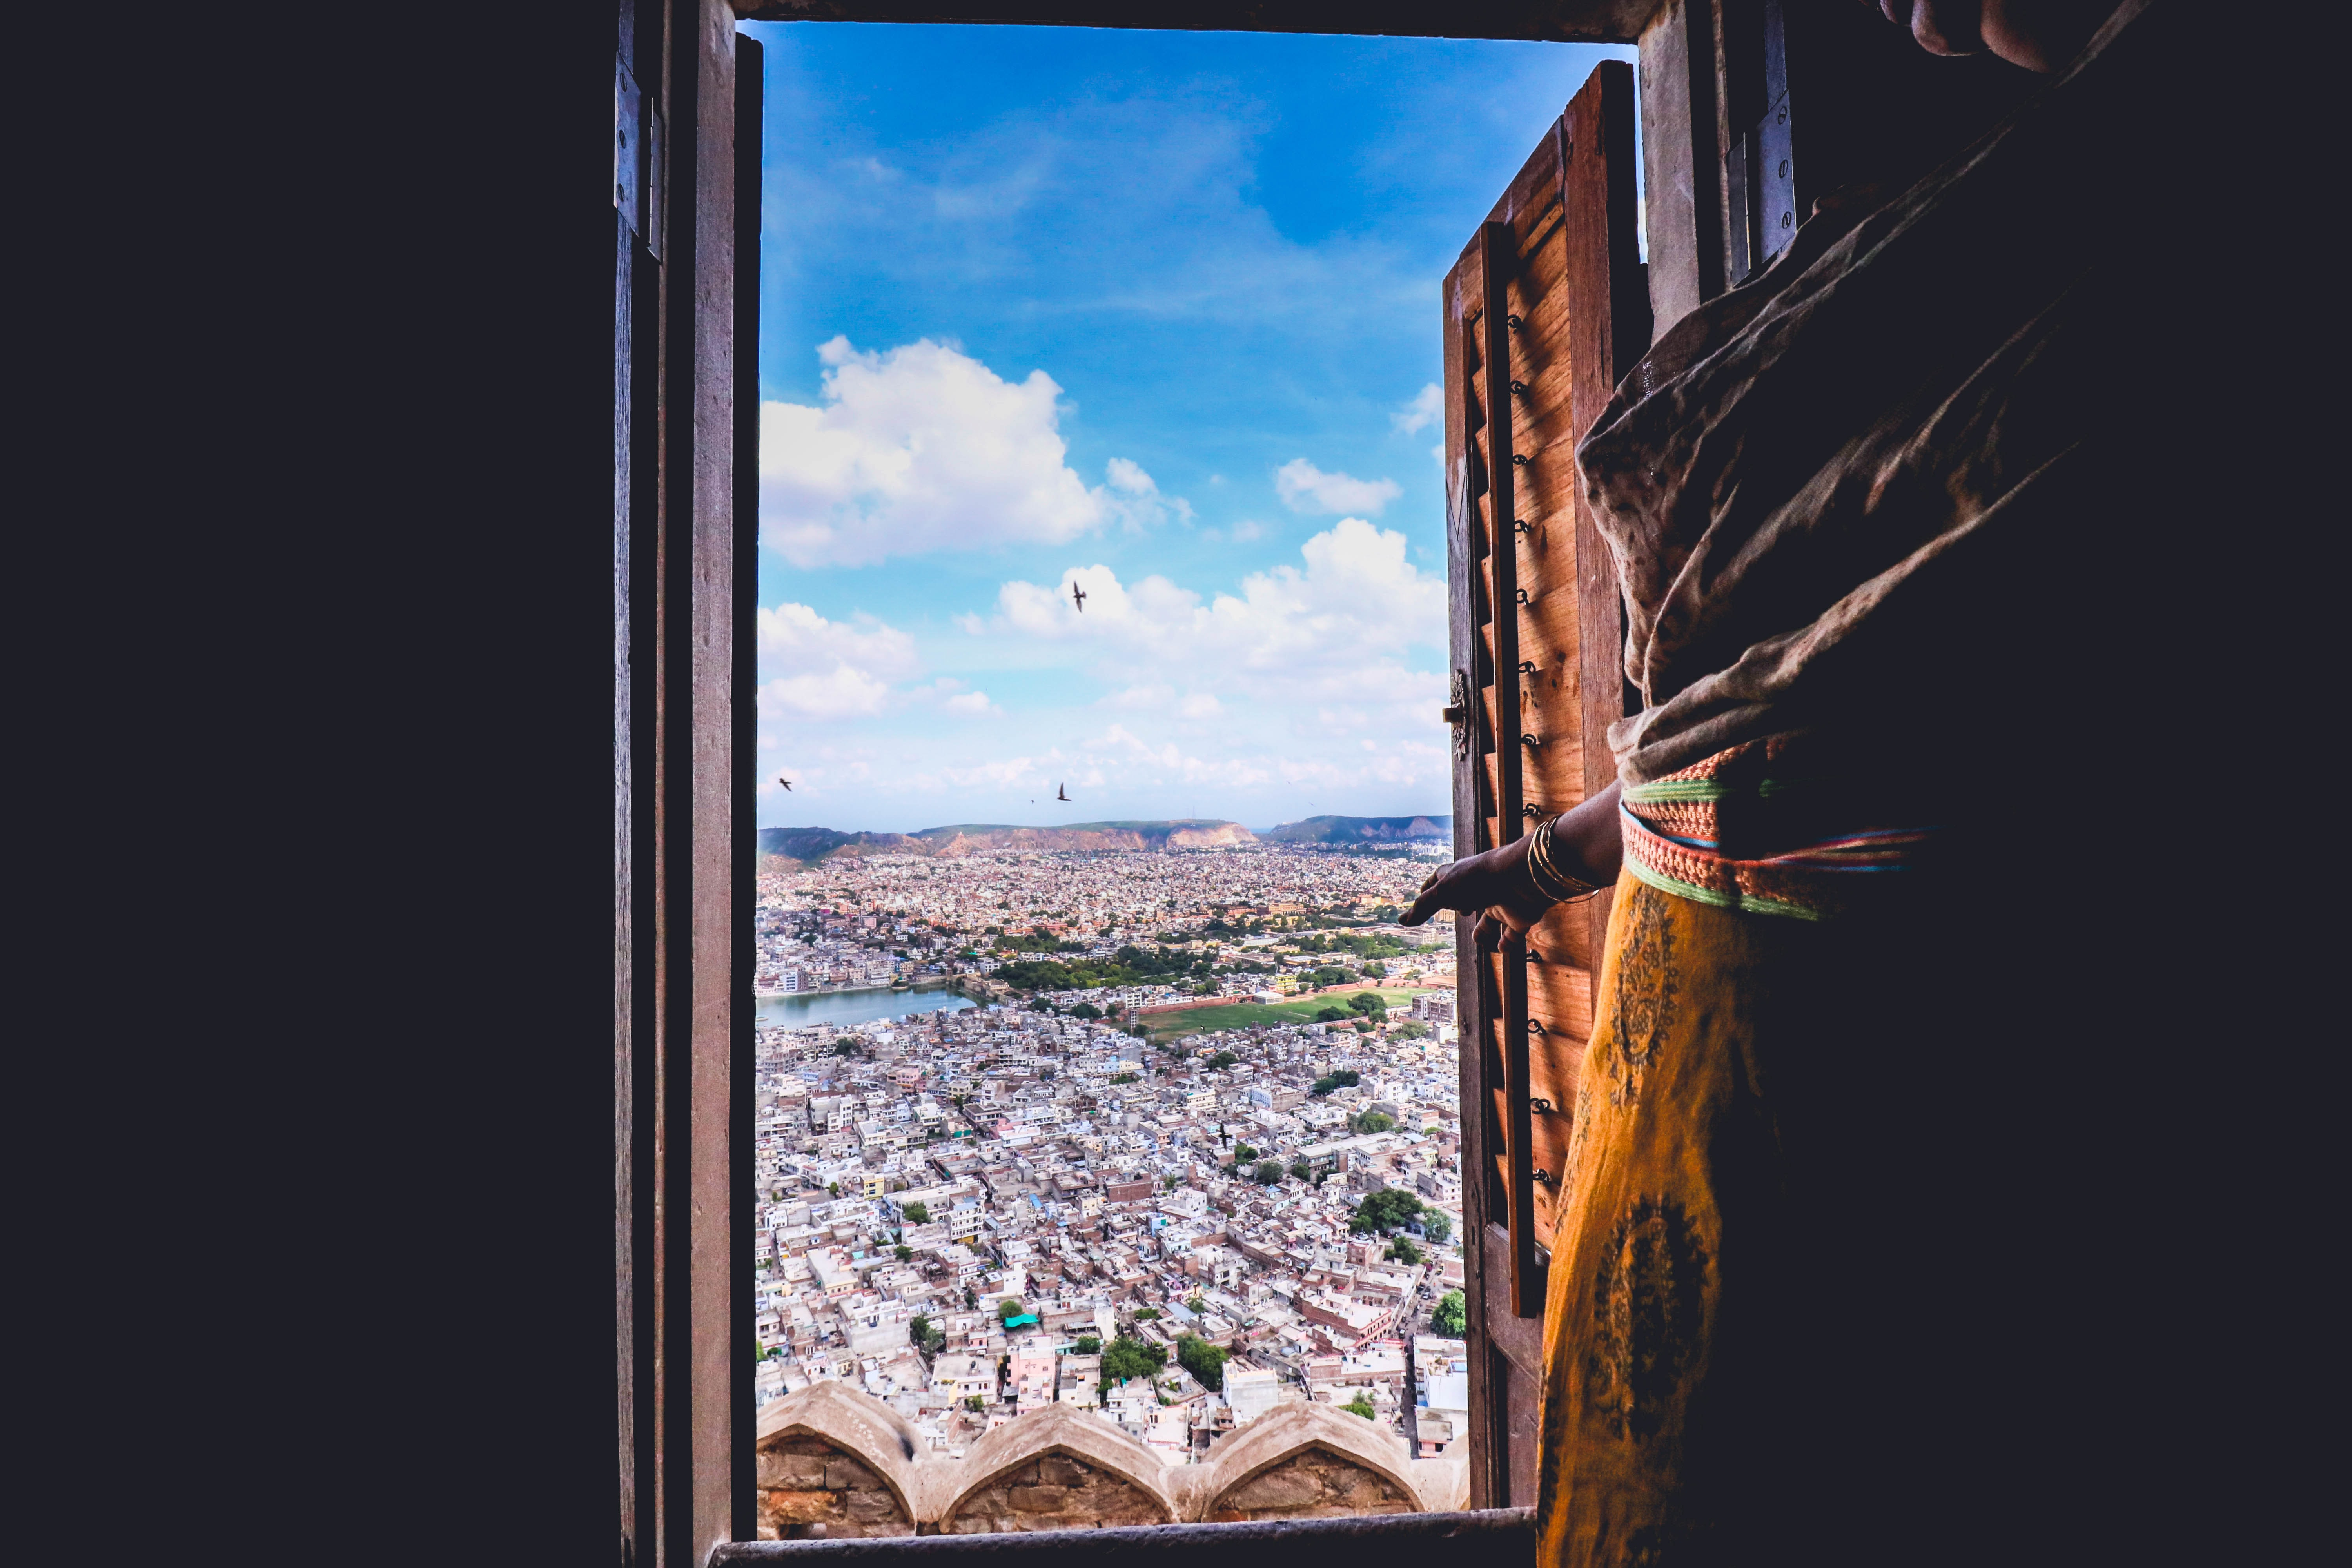 View of city from window with brown wooden shutter and cloudy blue sky, Nahargarh Fort